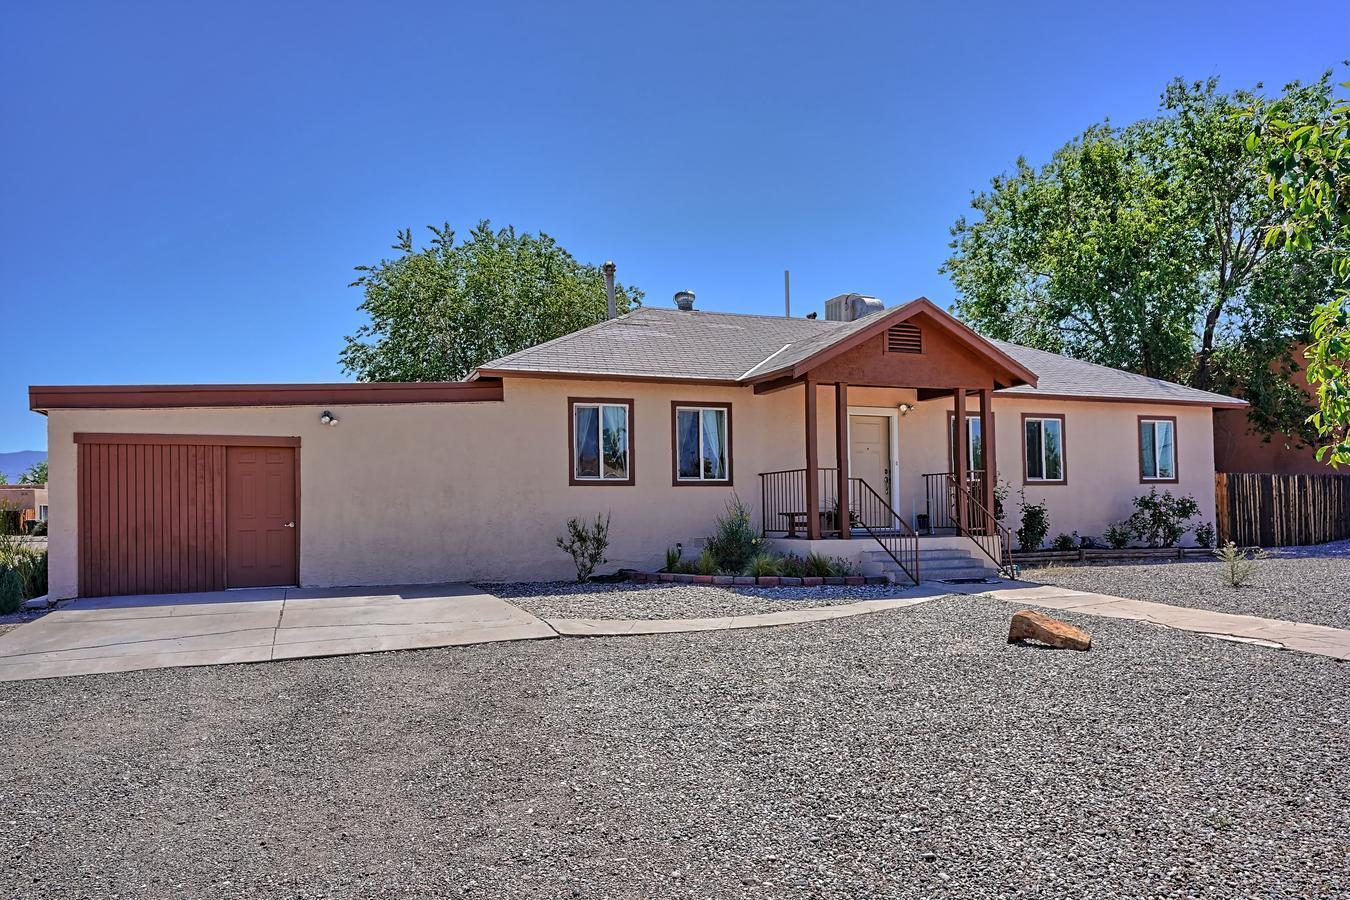 Convenient location with easy access to I-40 and Old Town/Plaza.  Large corner lot home sitting on .22 with privacy and views of the Sandias.  Update and move in ready.  Private side garden off master bedroom with French doors, full bath  w/2 bedrooms & full bath on other side of home for separation.  15 x 20 deck off of family room/office.  Xeriscaped for ease of maintenance.  New water & sewer line replacement, 40 gal water heater, 20g steel security front door, refreshed stucco and trim, interior paint, laminate floors/tile, appliances to include refrigerator, electric range, microwave, new garbage disposal, washer and dryer. Converted enclosed one car carport, perfect for storage/workroom with updated electrical outlets & lighting-can be reconverted back to 1 car garage.